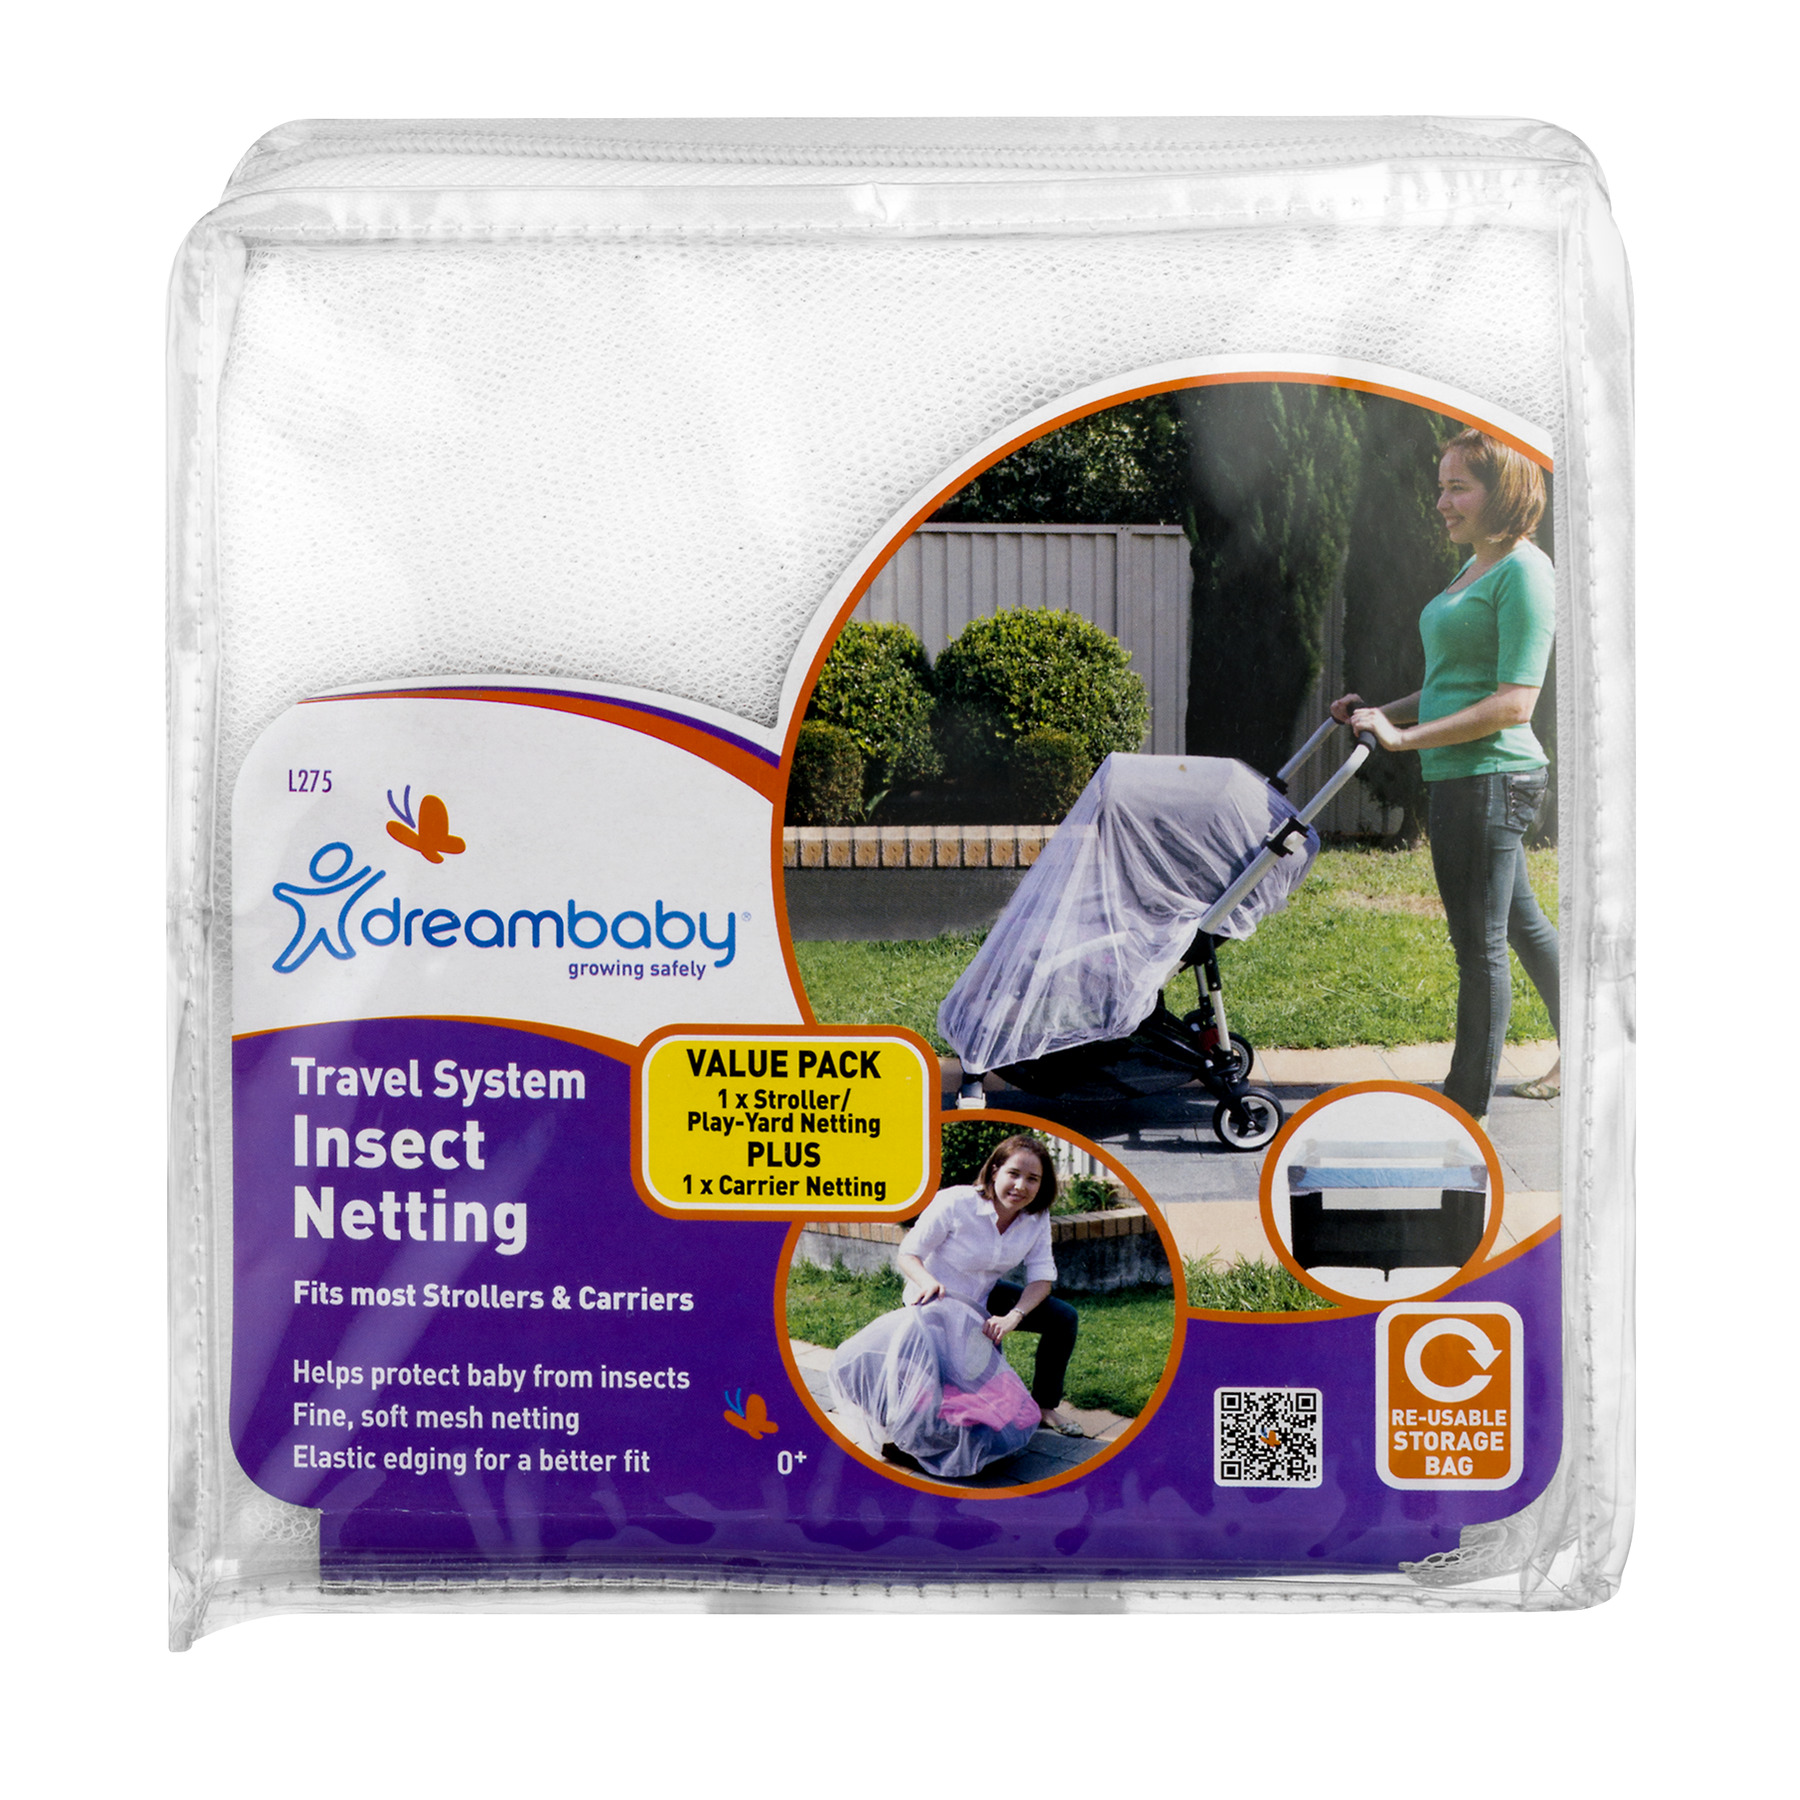 Click here to buy Dreambaby Travel System Insect Netting, 2 piece set by Dreambaby.